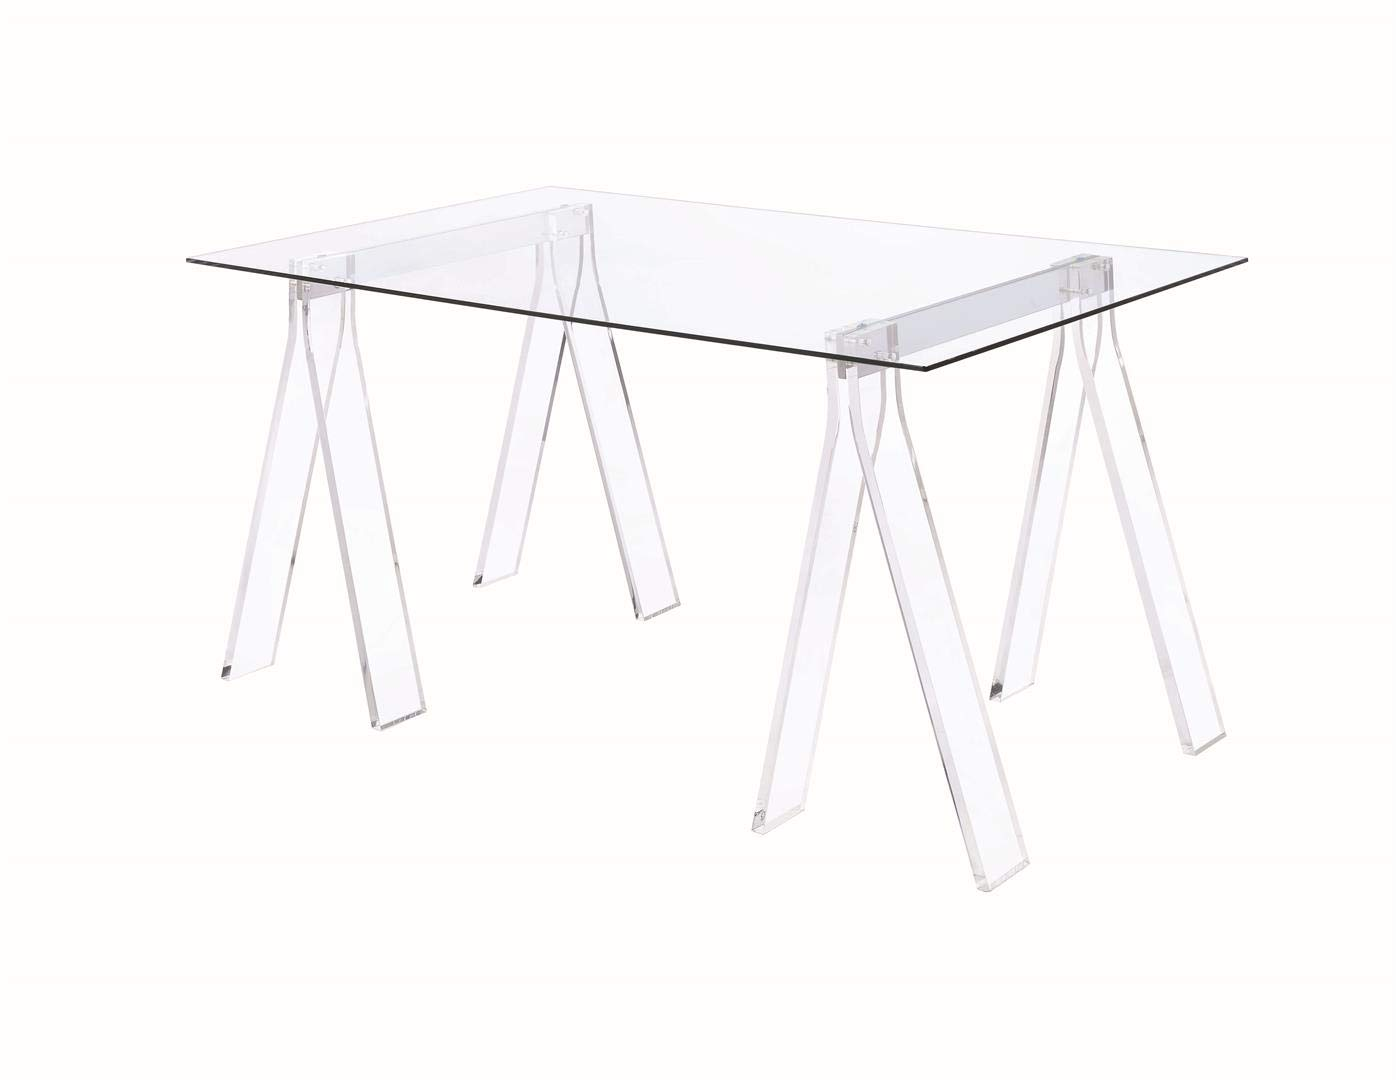 Coaster Home Furnishings Coaster Amaturo Contemporary Clear Acrylic Sawhorse Writing Desk, 31.5x59x30, Glass